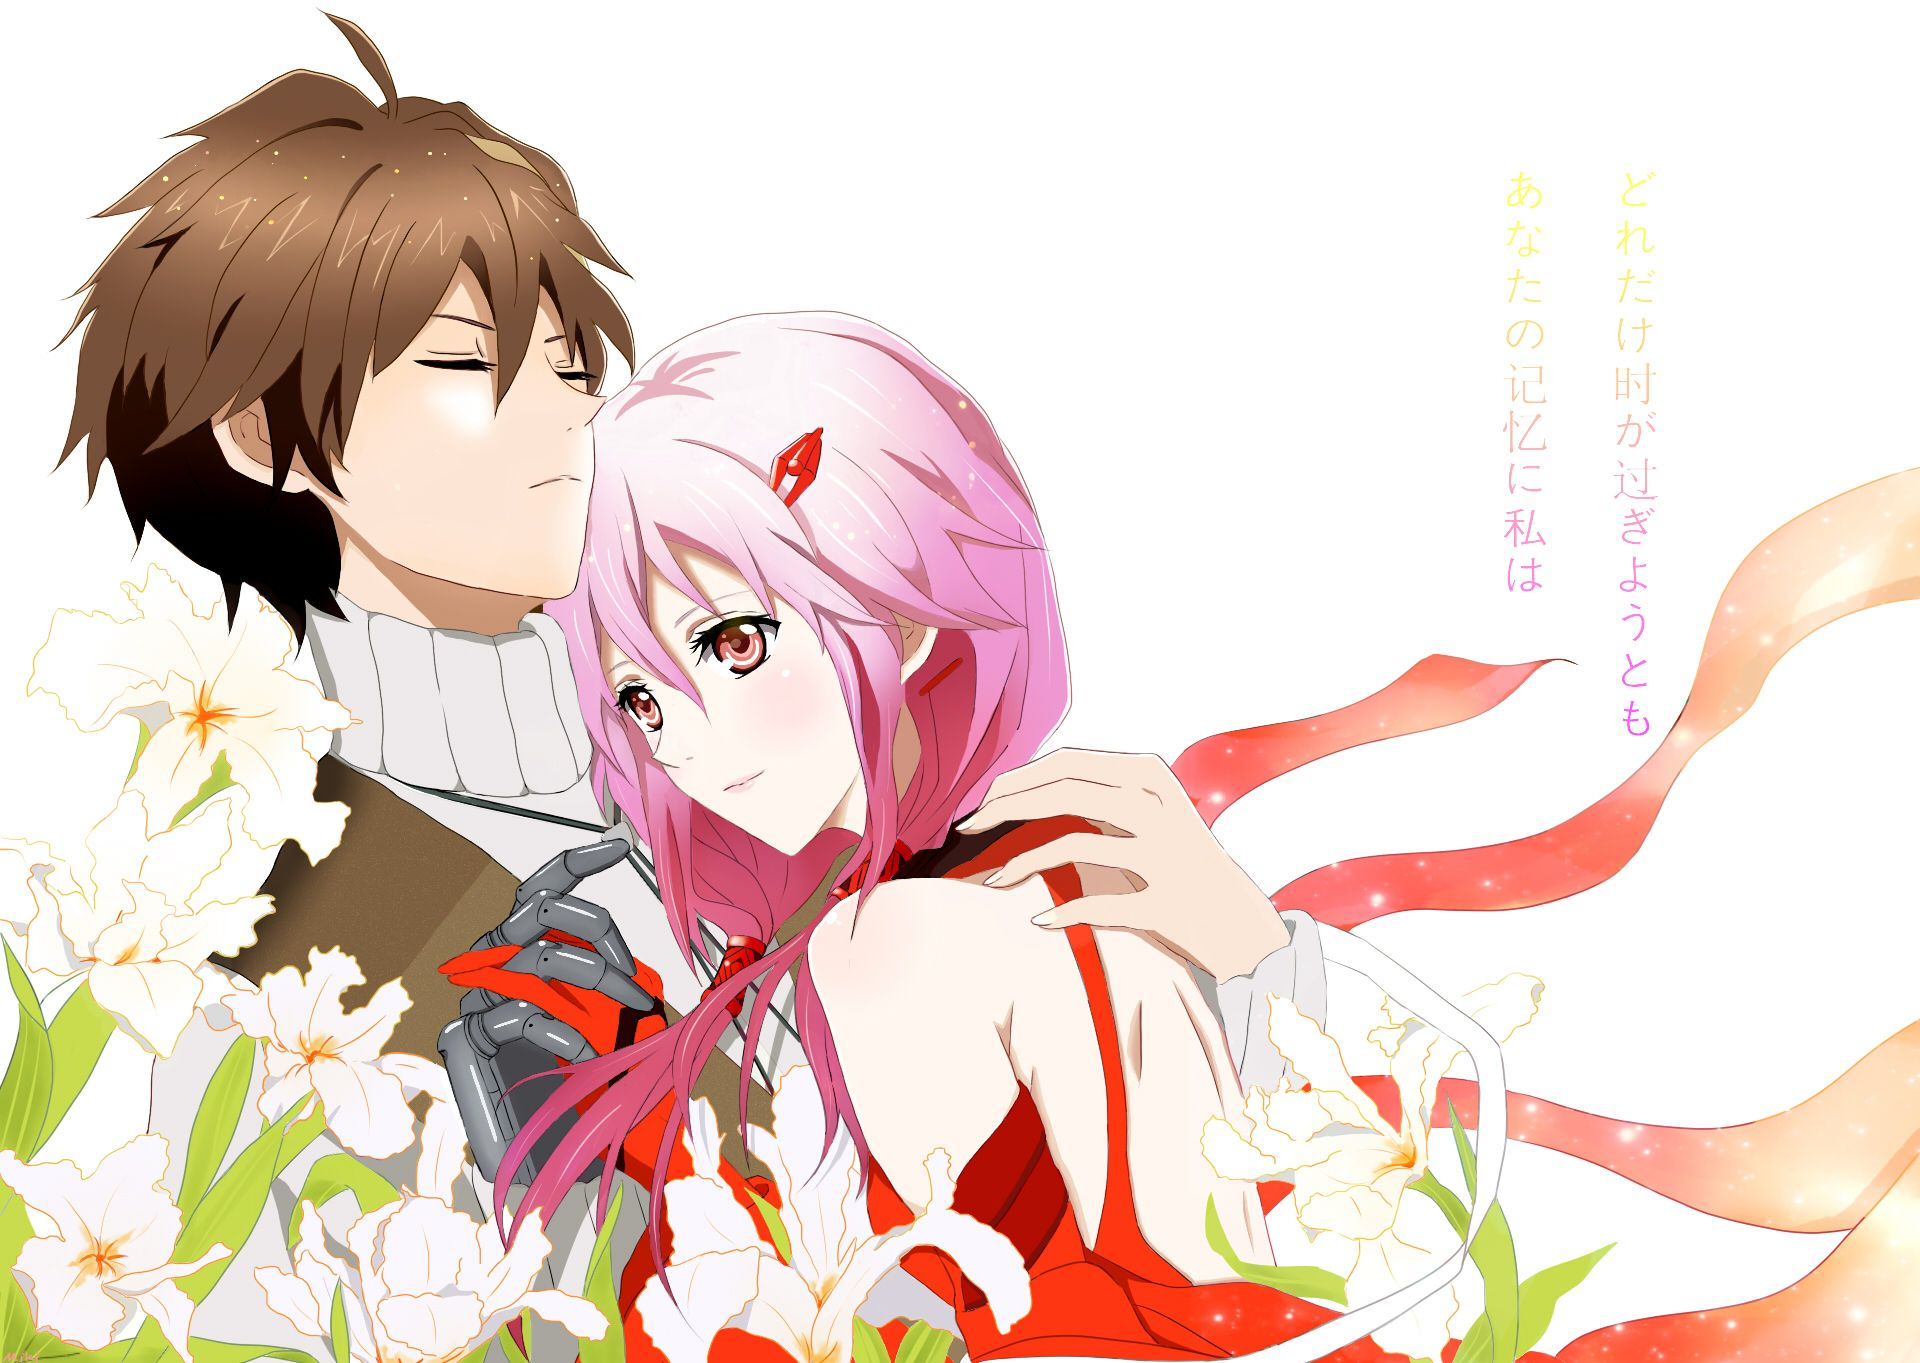 Pin on guilty crown